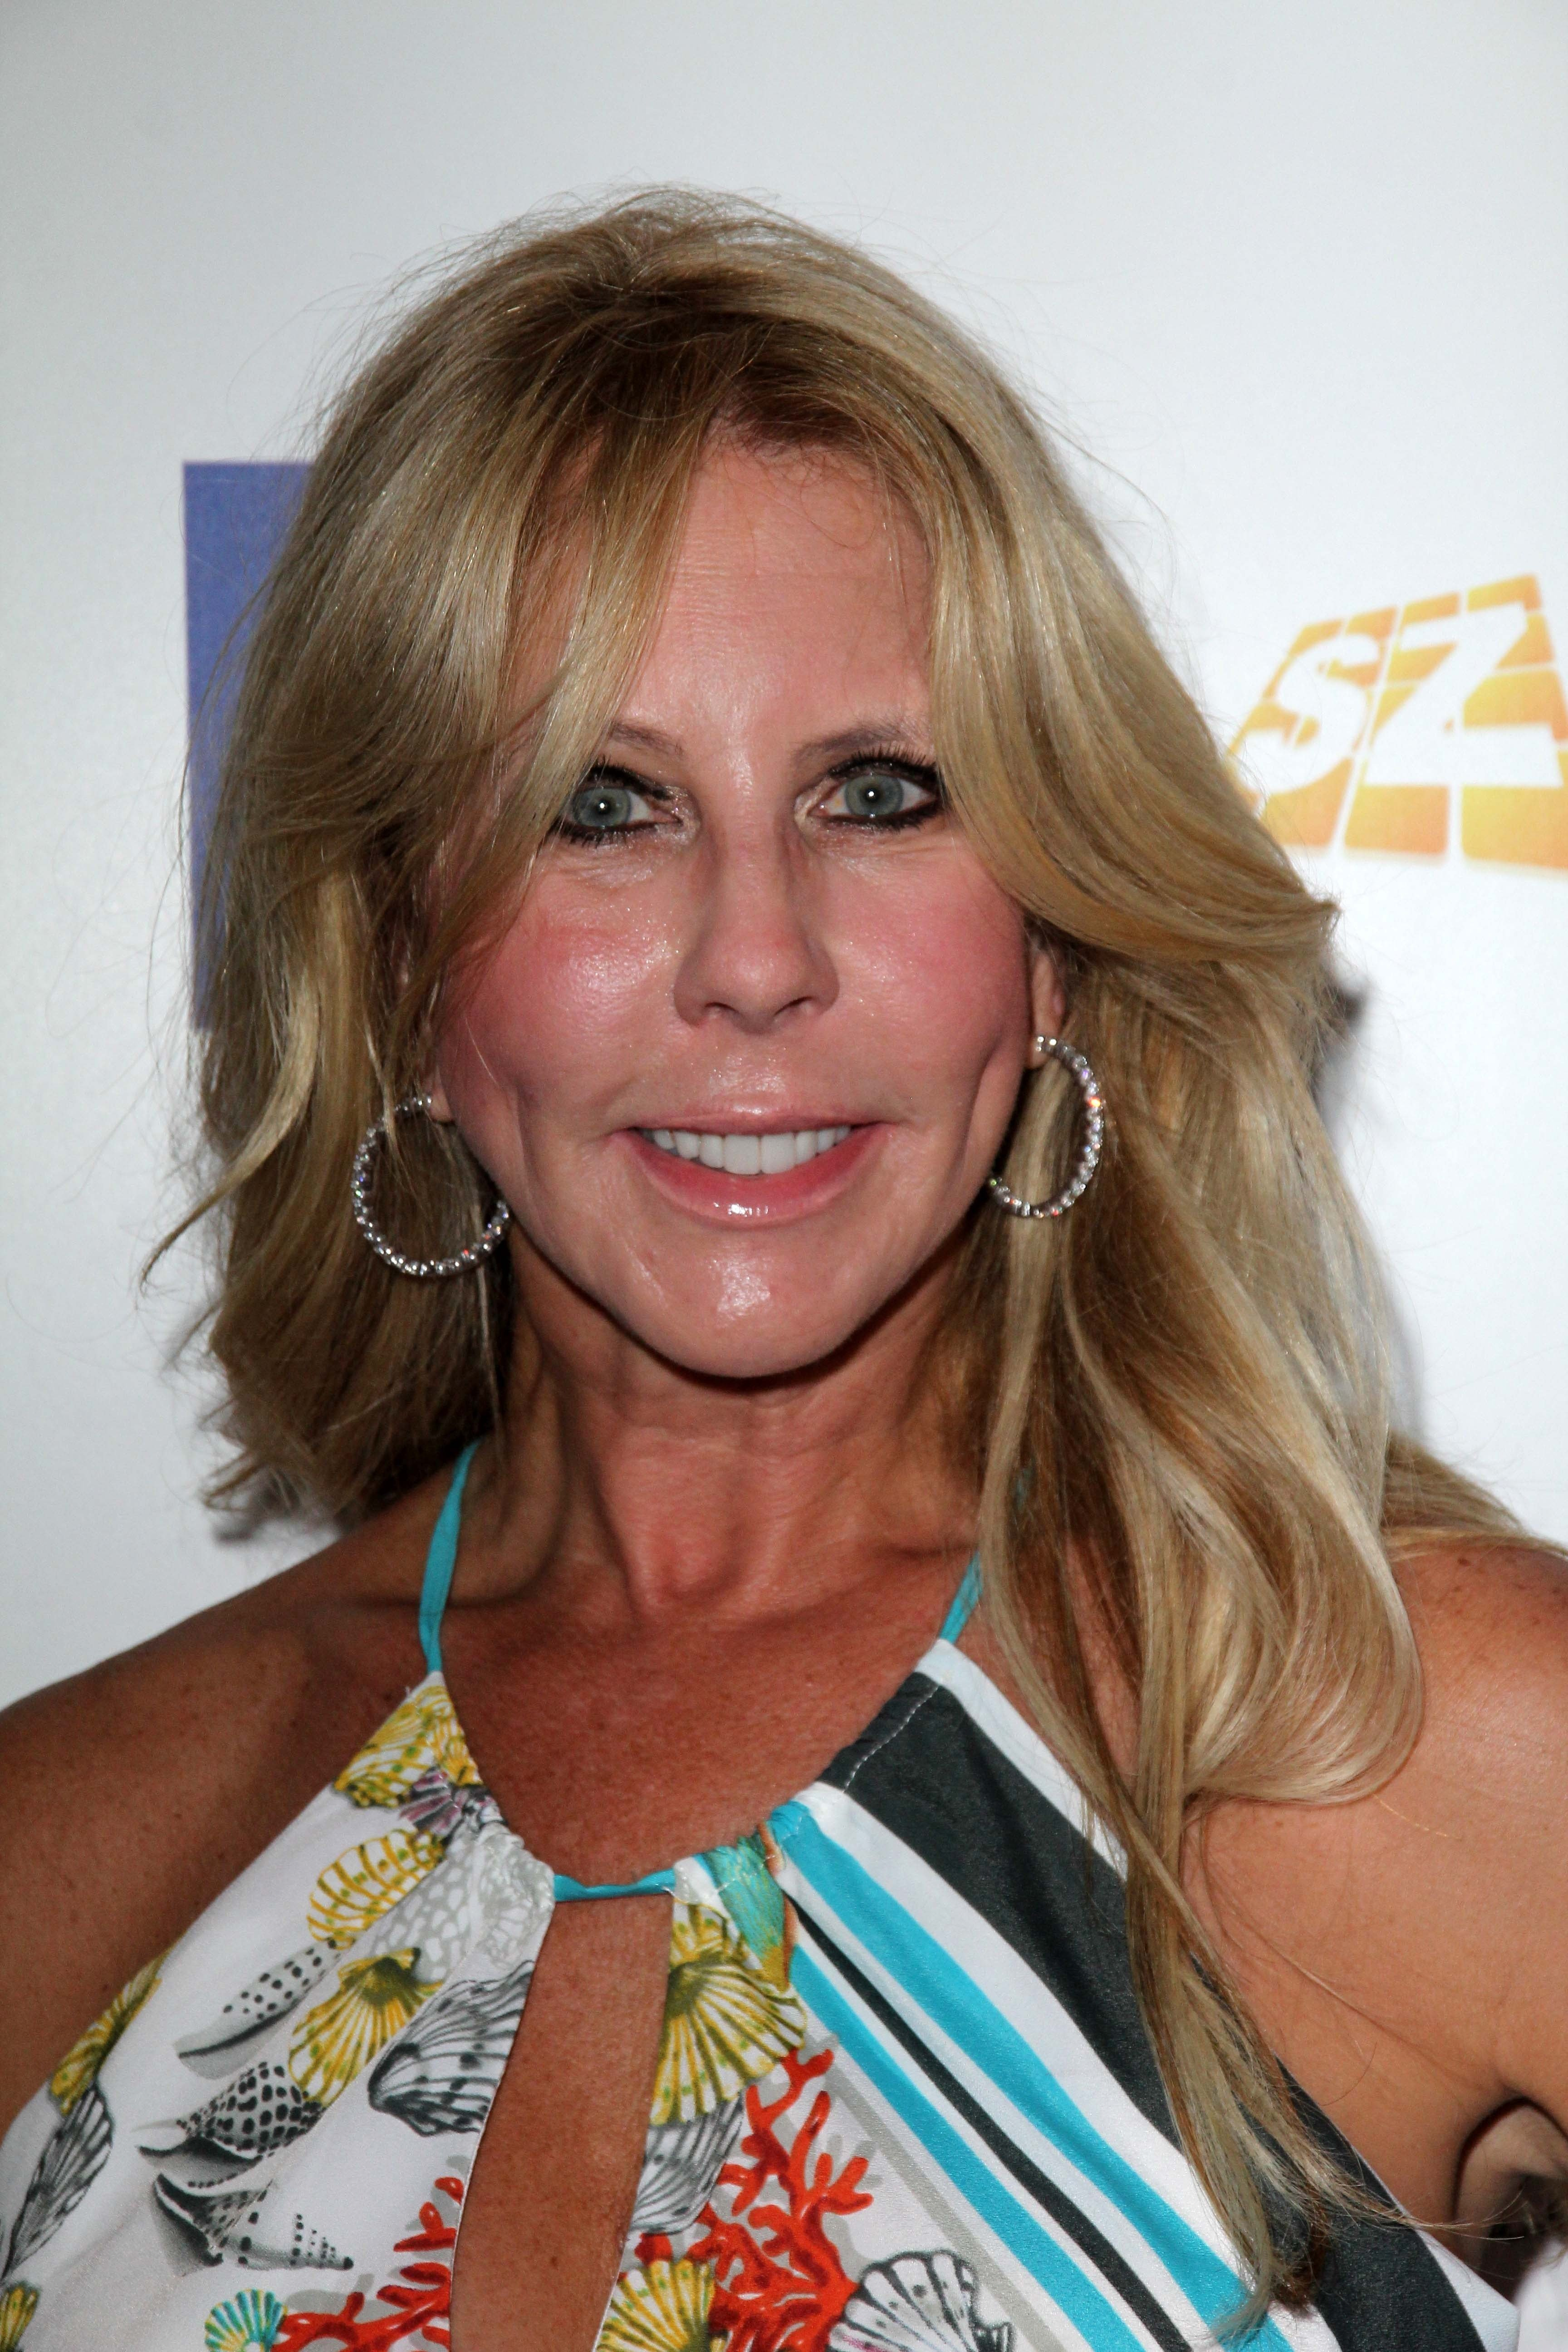 Vicki Gunvalson at the 2nd Annual Red Carpet event at SLS Hotel on August 9, 2012 Beverly Hills, California | Photo: Shutterstock